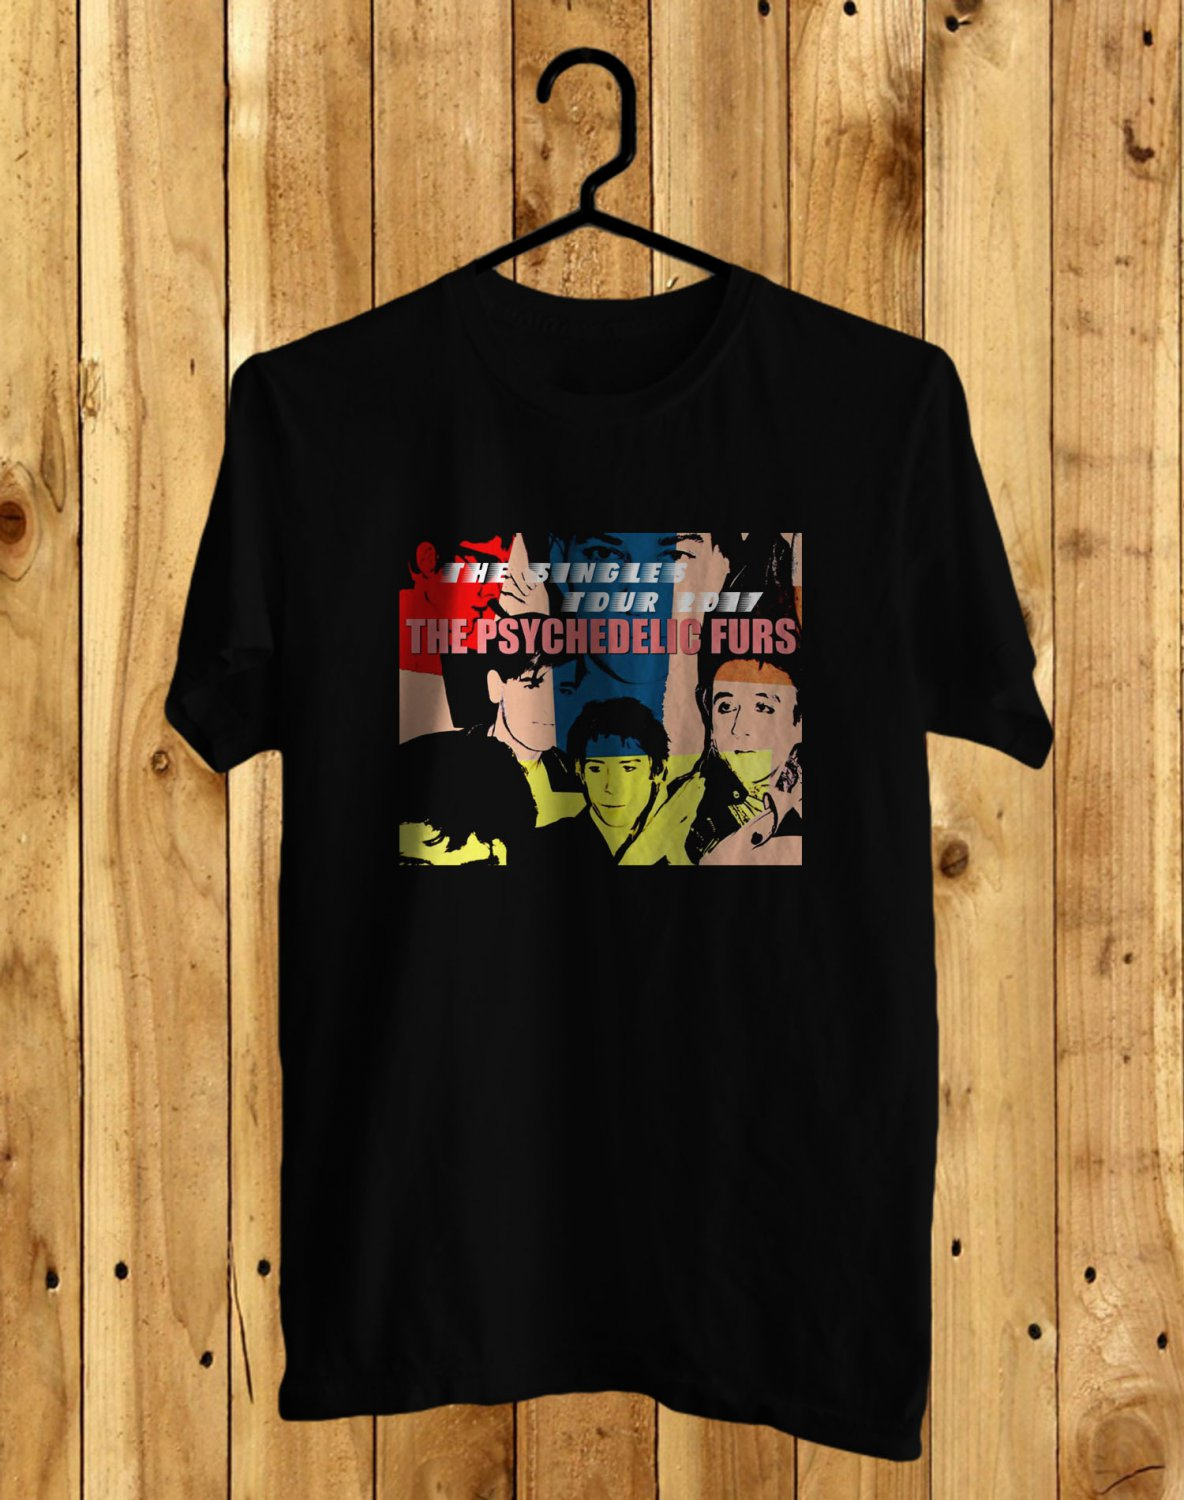 The Psychedelic Furs the Singles Tour 2017 Black Tee's Front Side by Complexart z3